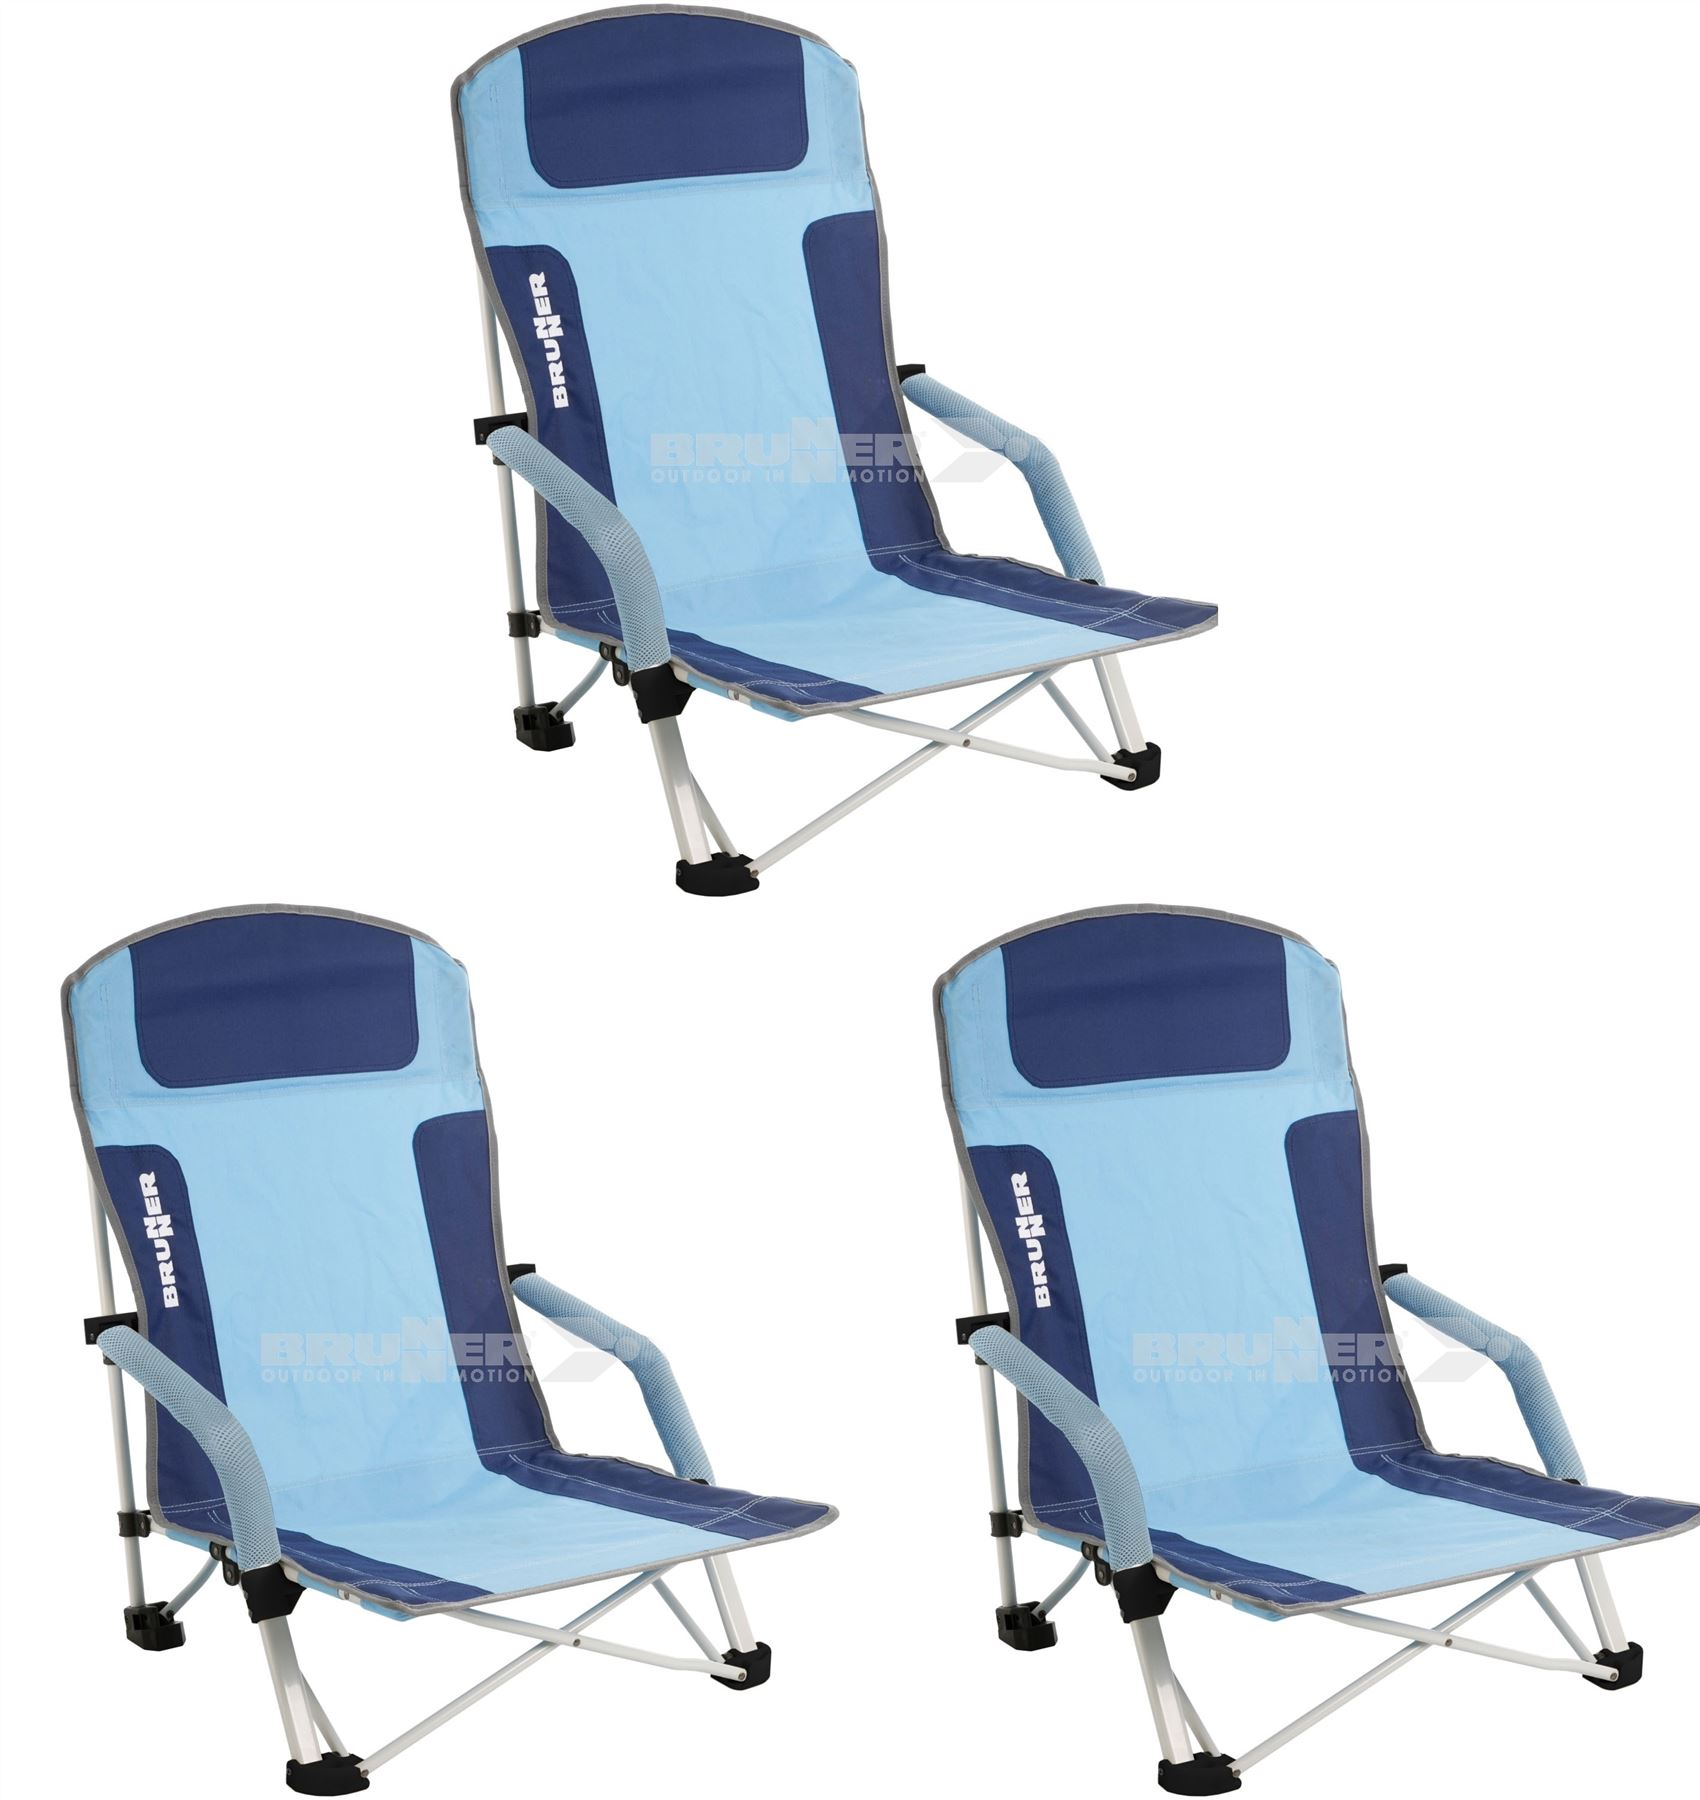 Brunner Bula Low Camping Beach Folding Chair x 3